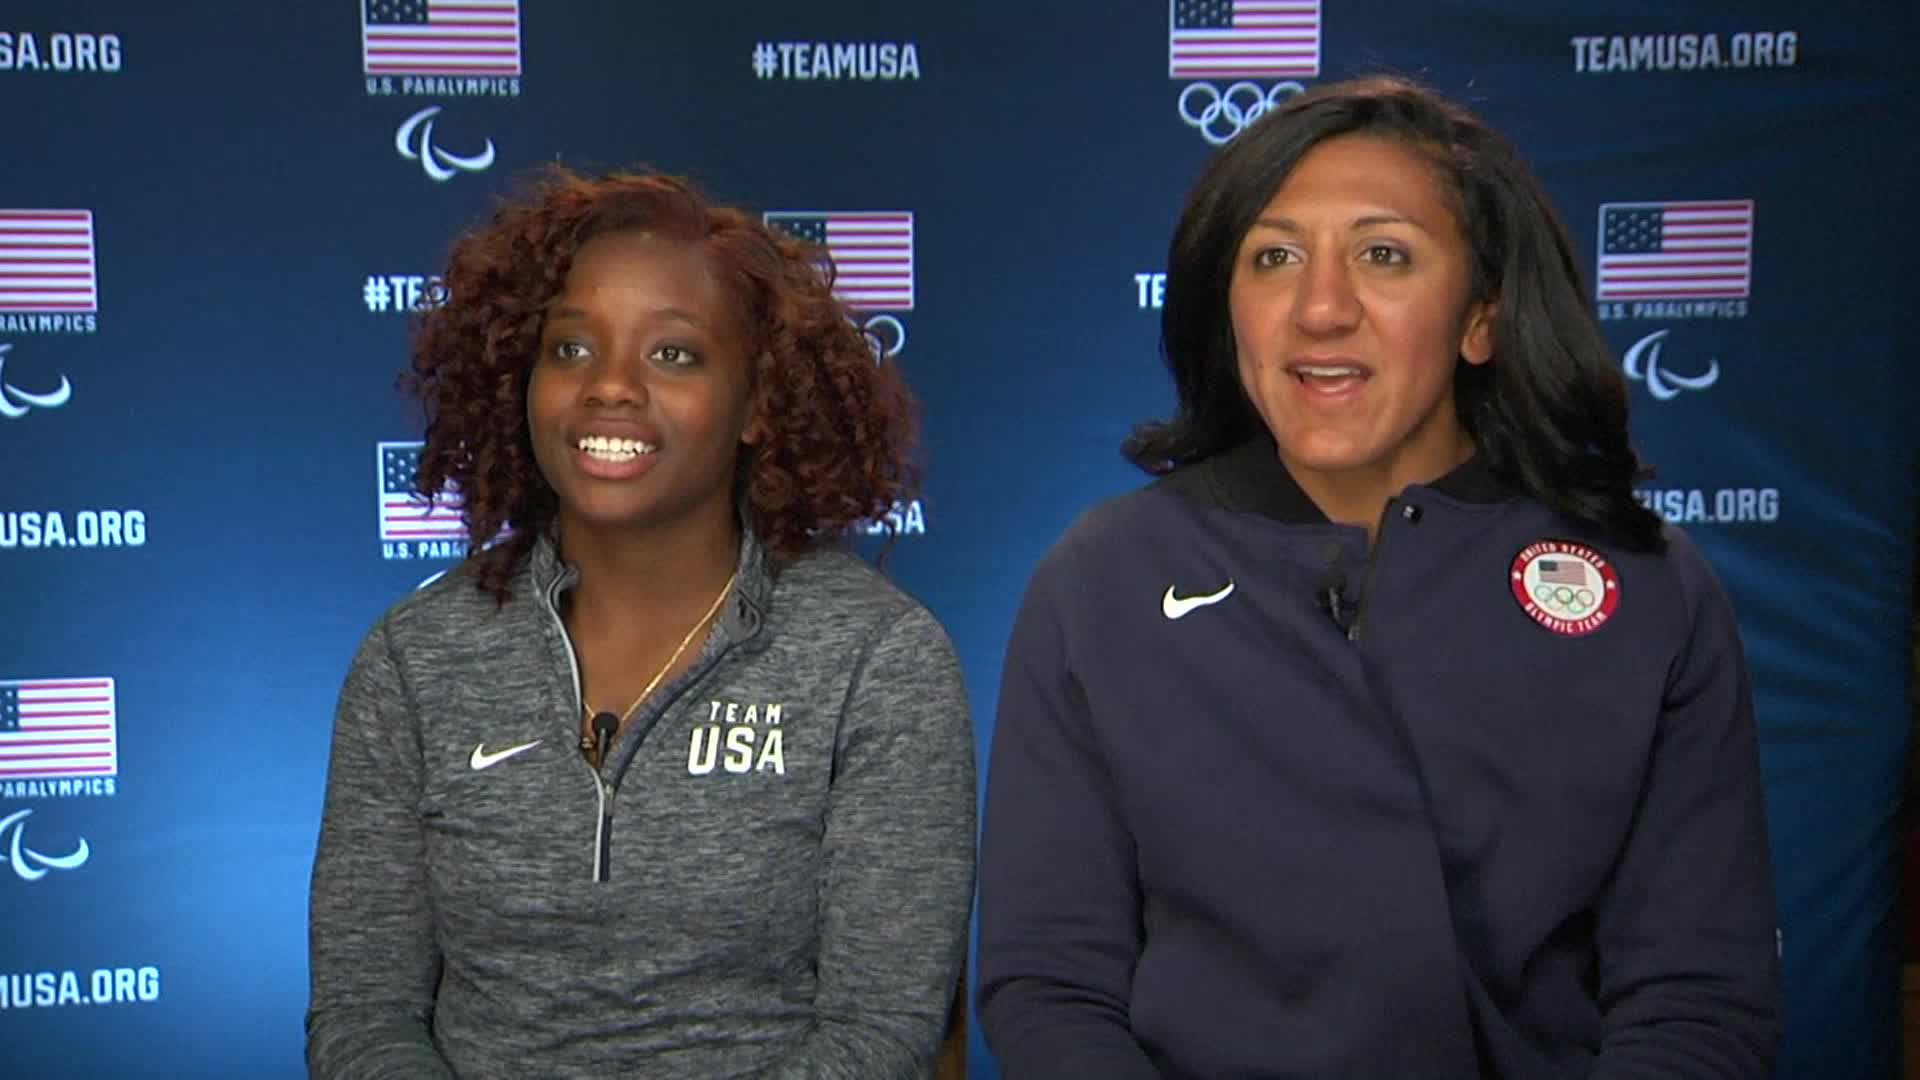 elana meyers taylor, kehri jones olympics_343383